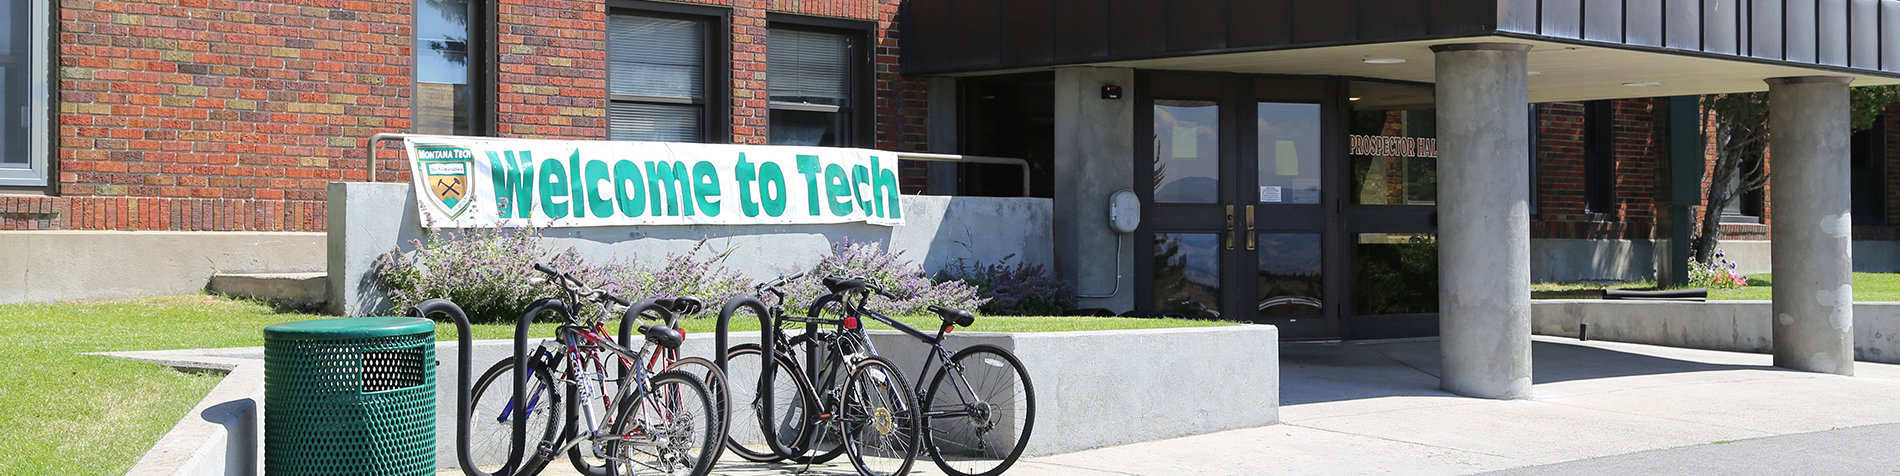 apply for housing at Montana Tech